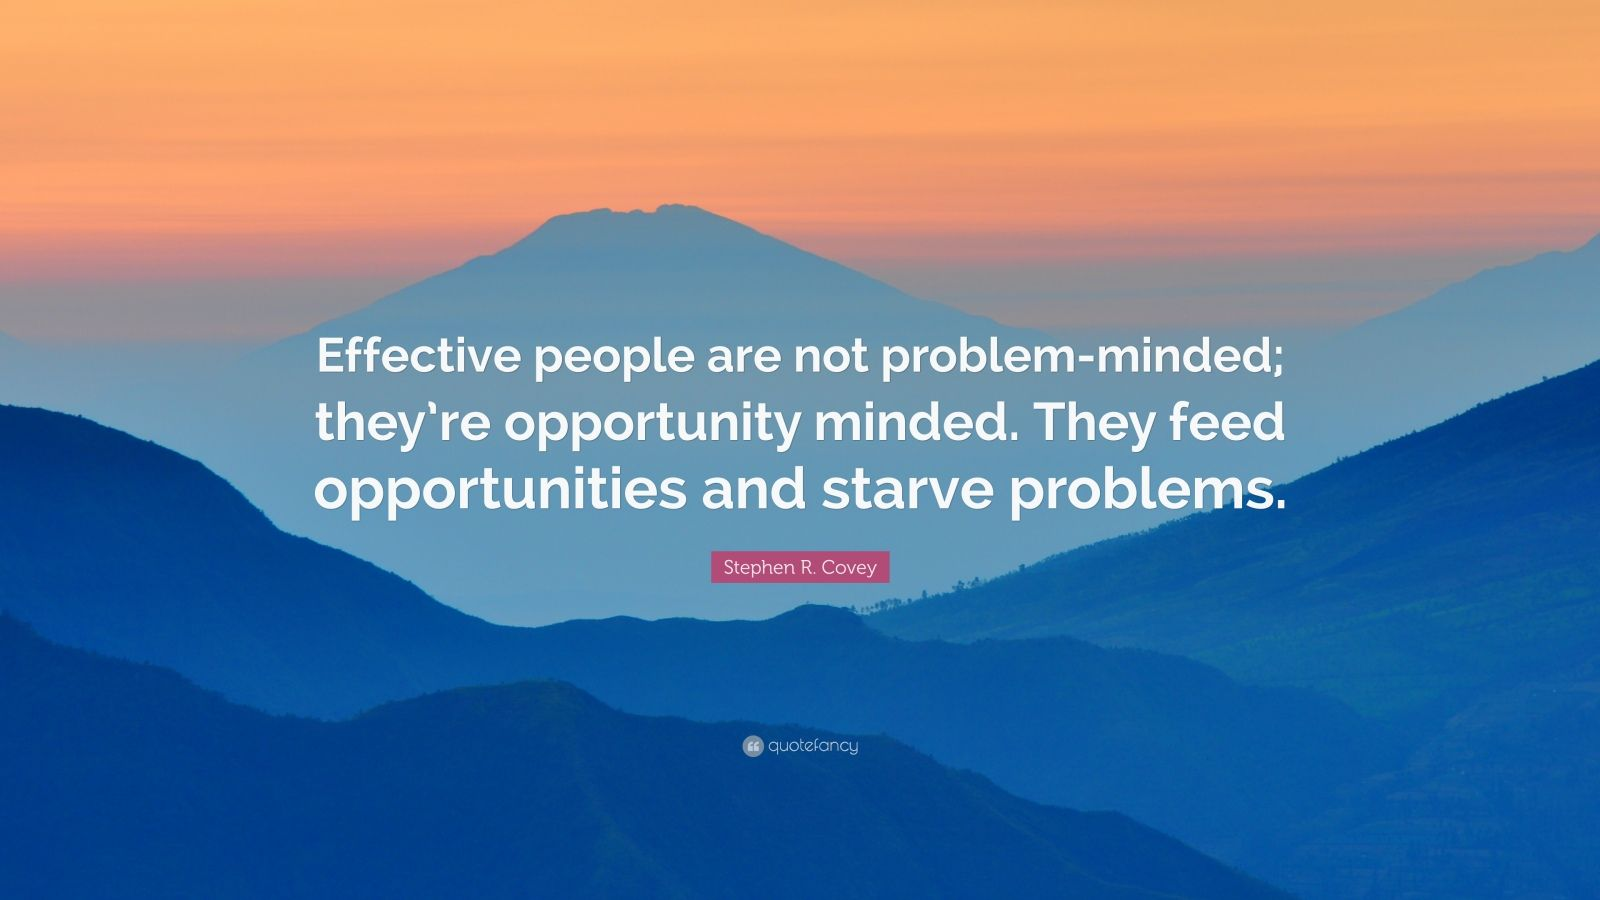 """Stephen R. Covey Quote: """"Effective people are not problem-minded; they're opportunity minded. They feed opportunities and starve problems."""""""